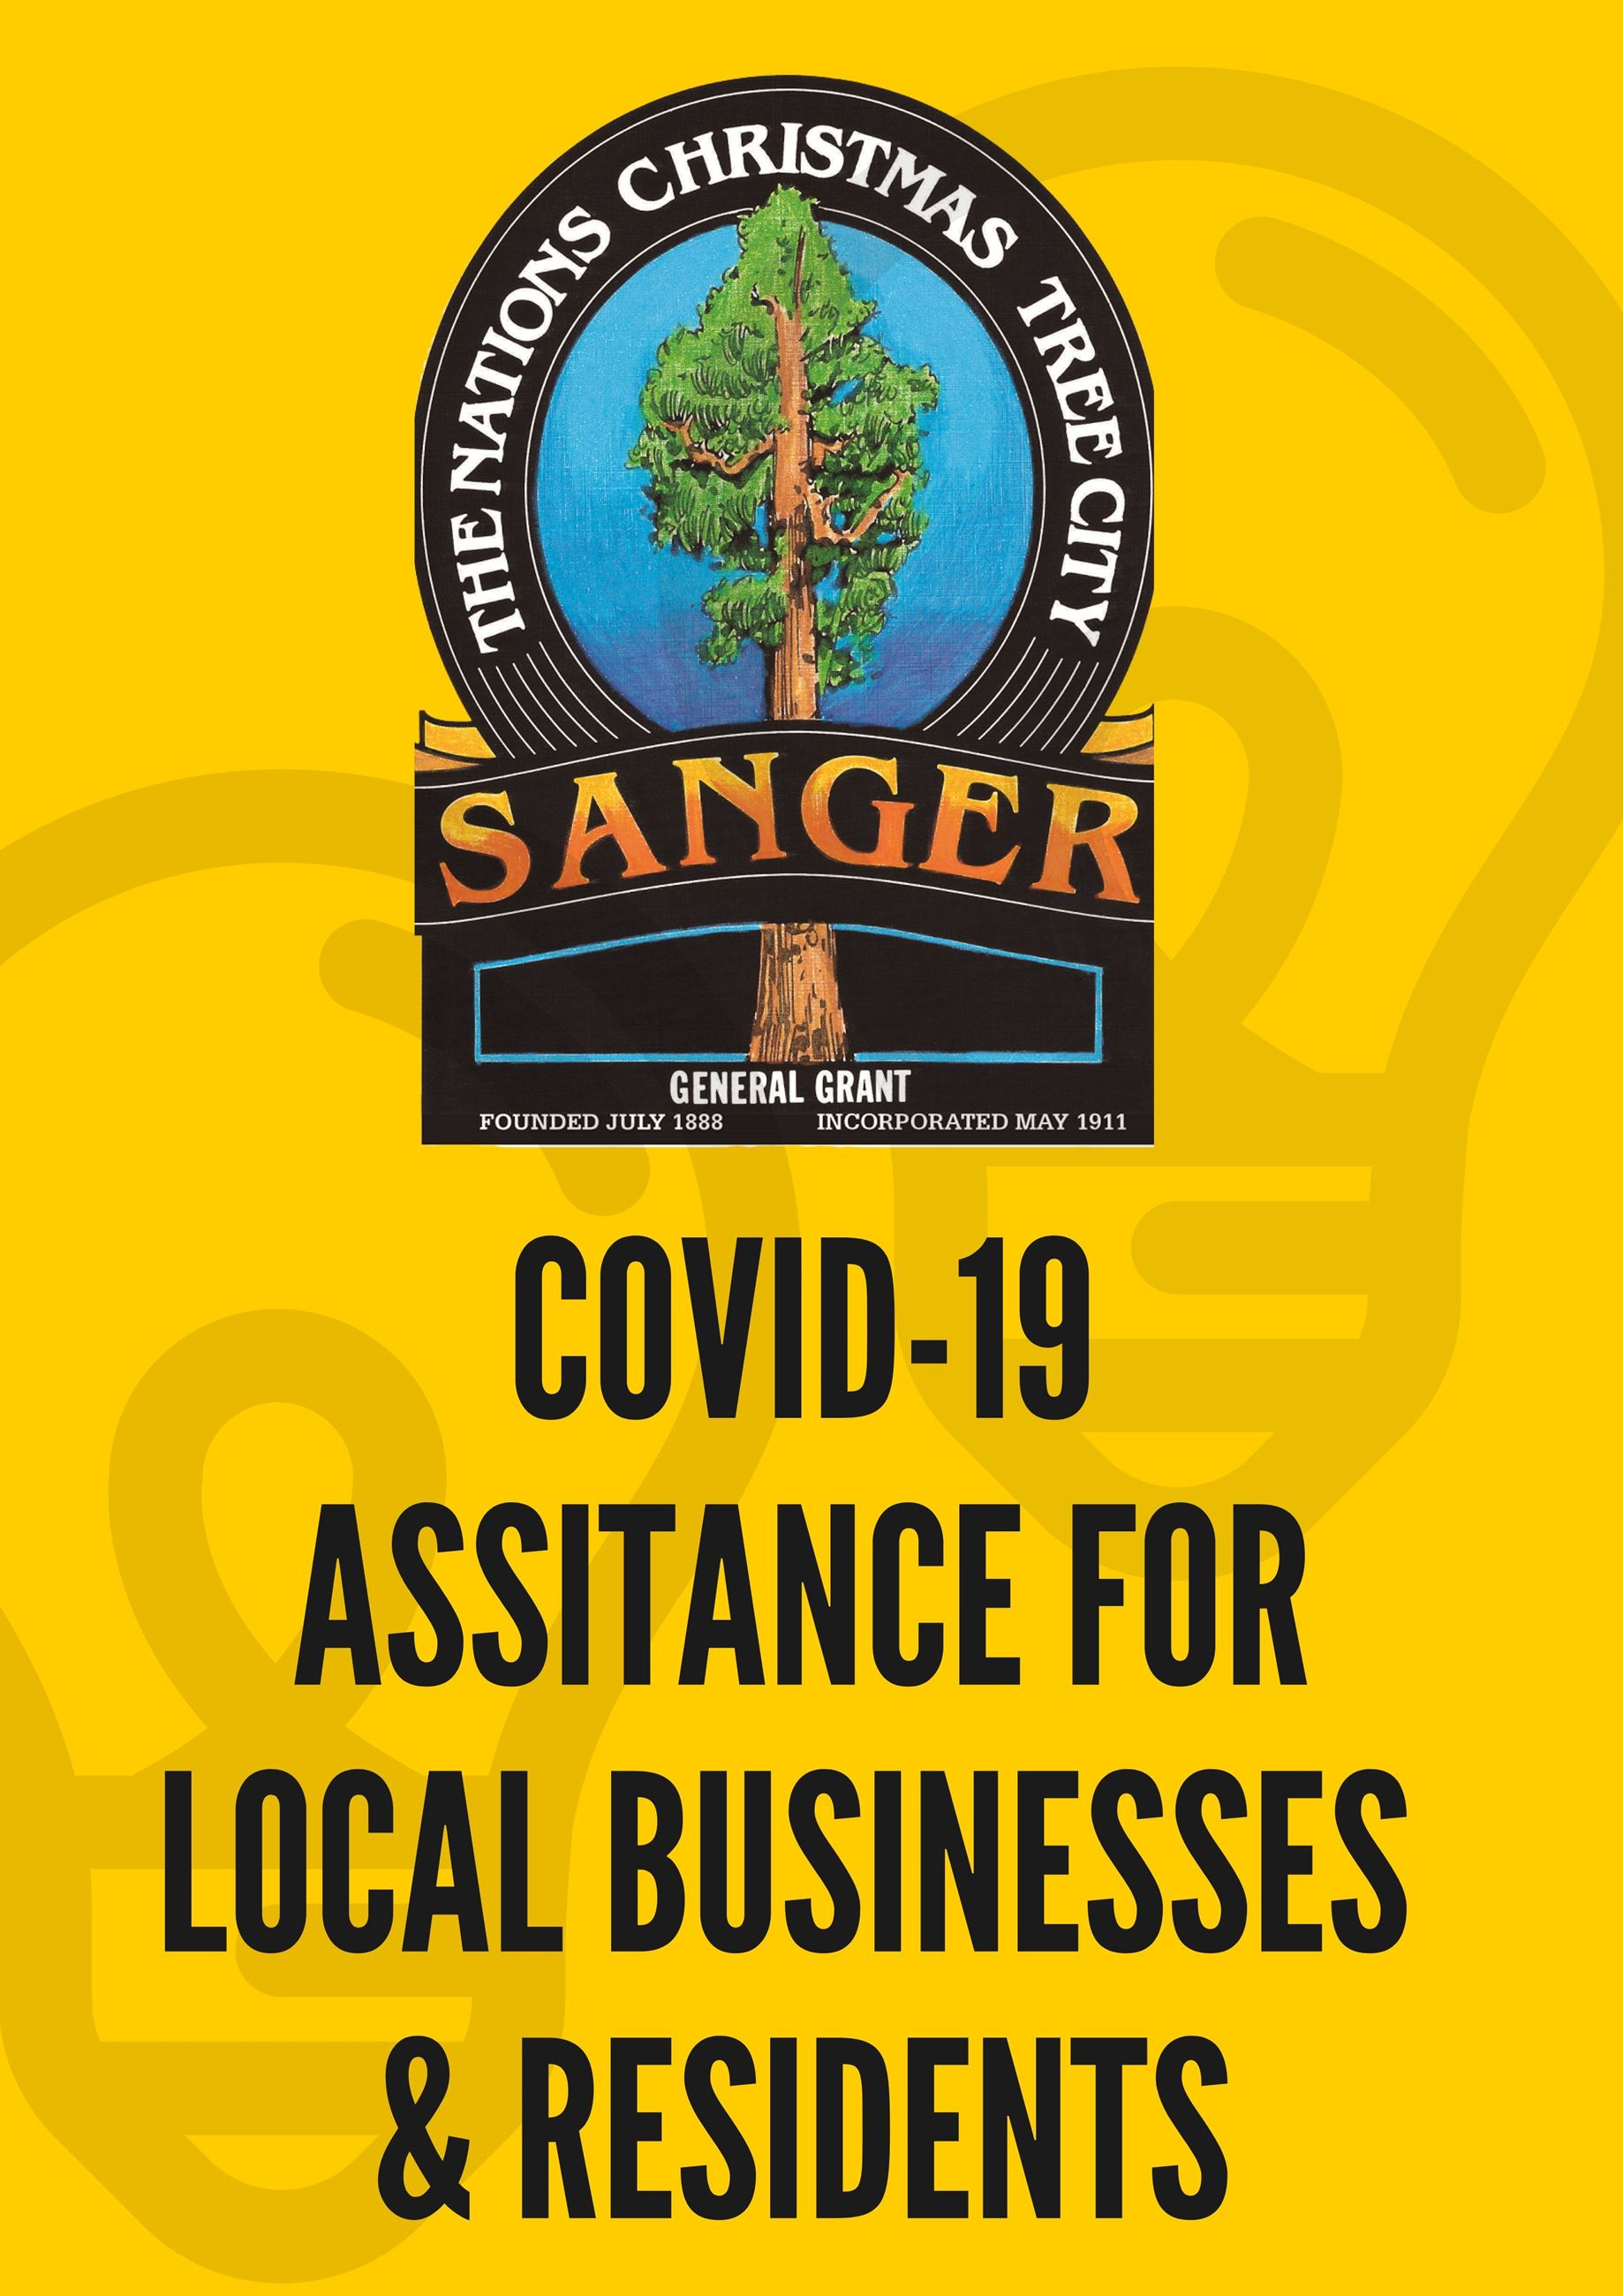 Sanger Business and Residents Yellow, black letters, City Logos